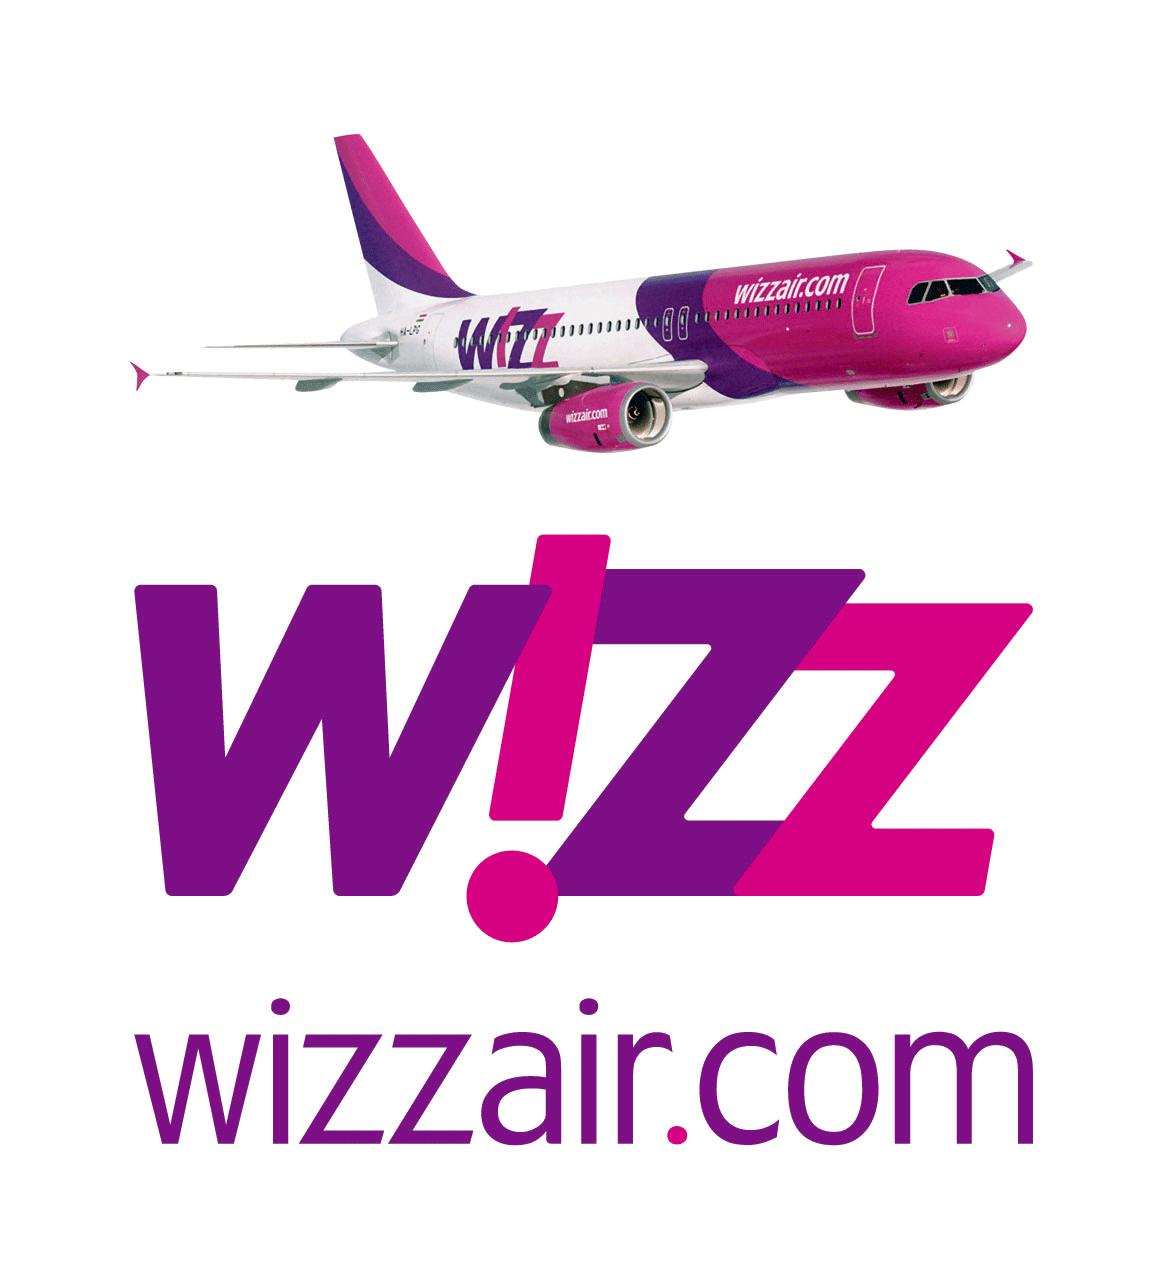 Wizz Air restructures operations and closes Wizz Air Ukraine